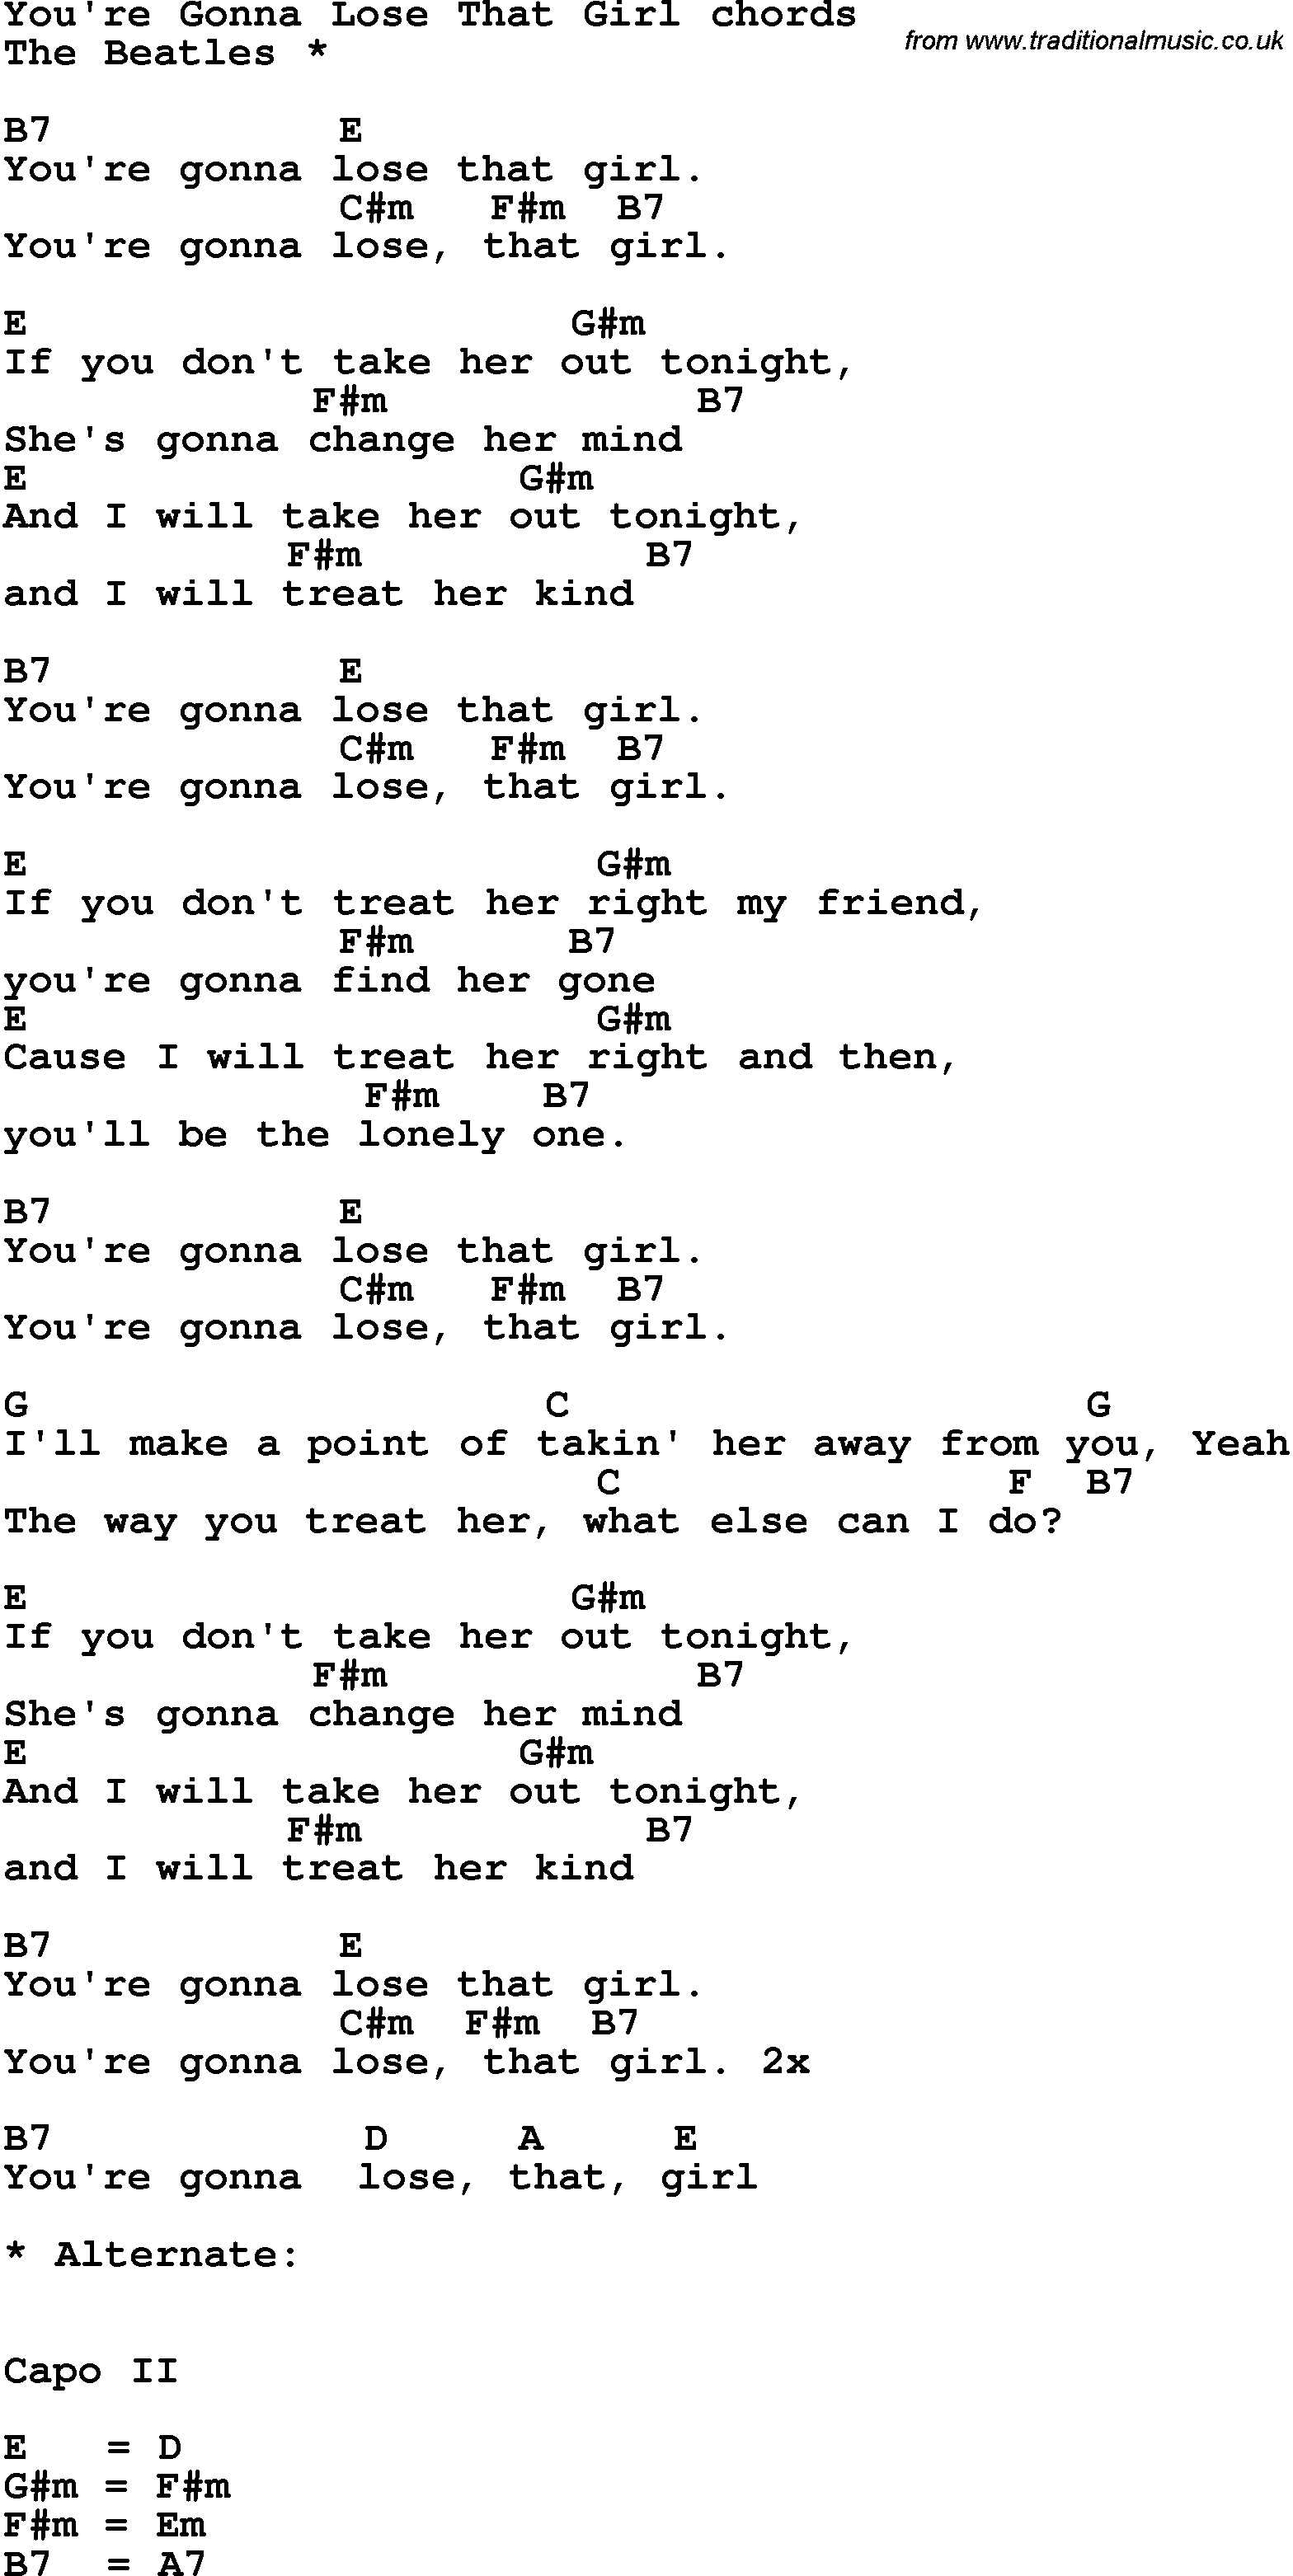 Songs for a girl youre dating